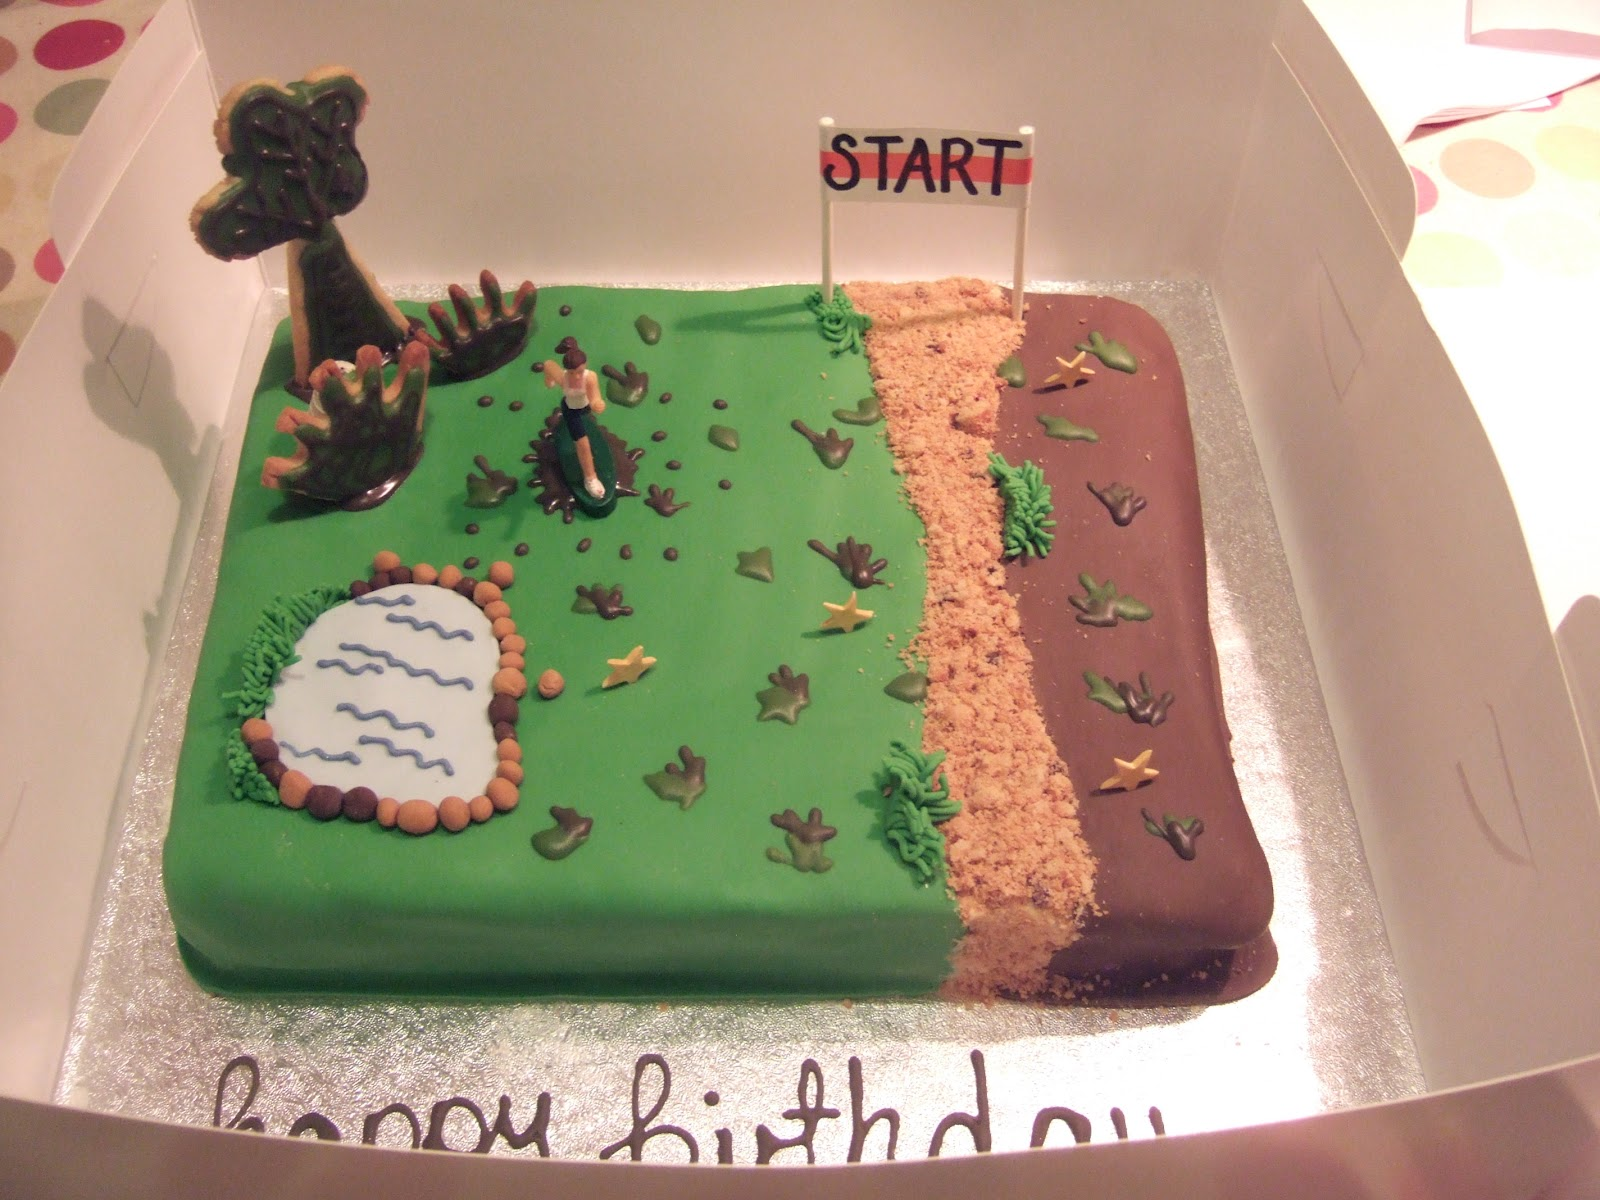 Cake Decorating Ideas Runners : Cross Country Cake Decorating Ideas 6194 Cross Country Run